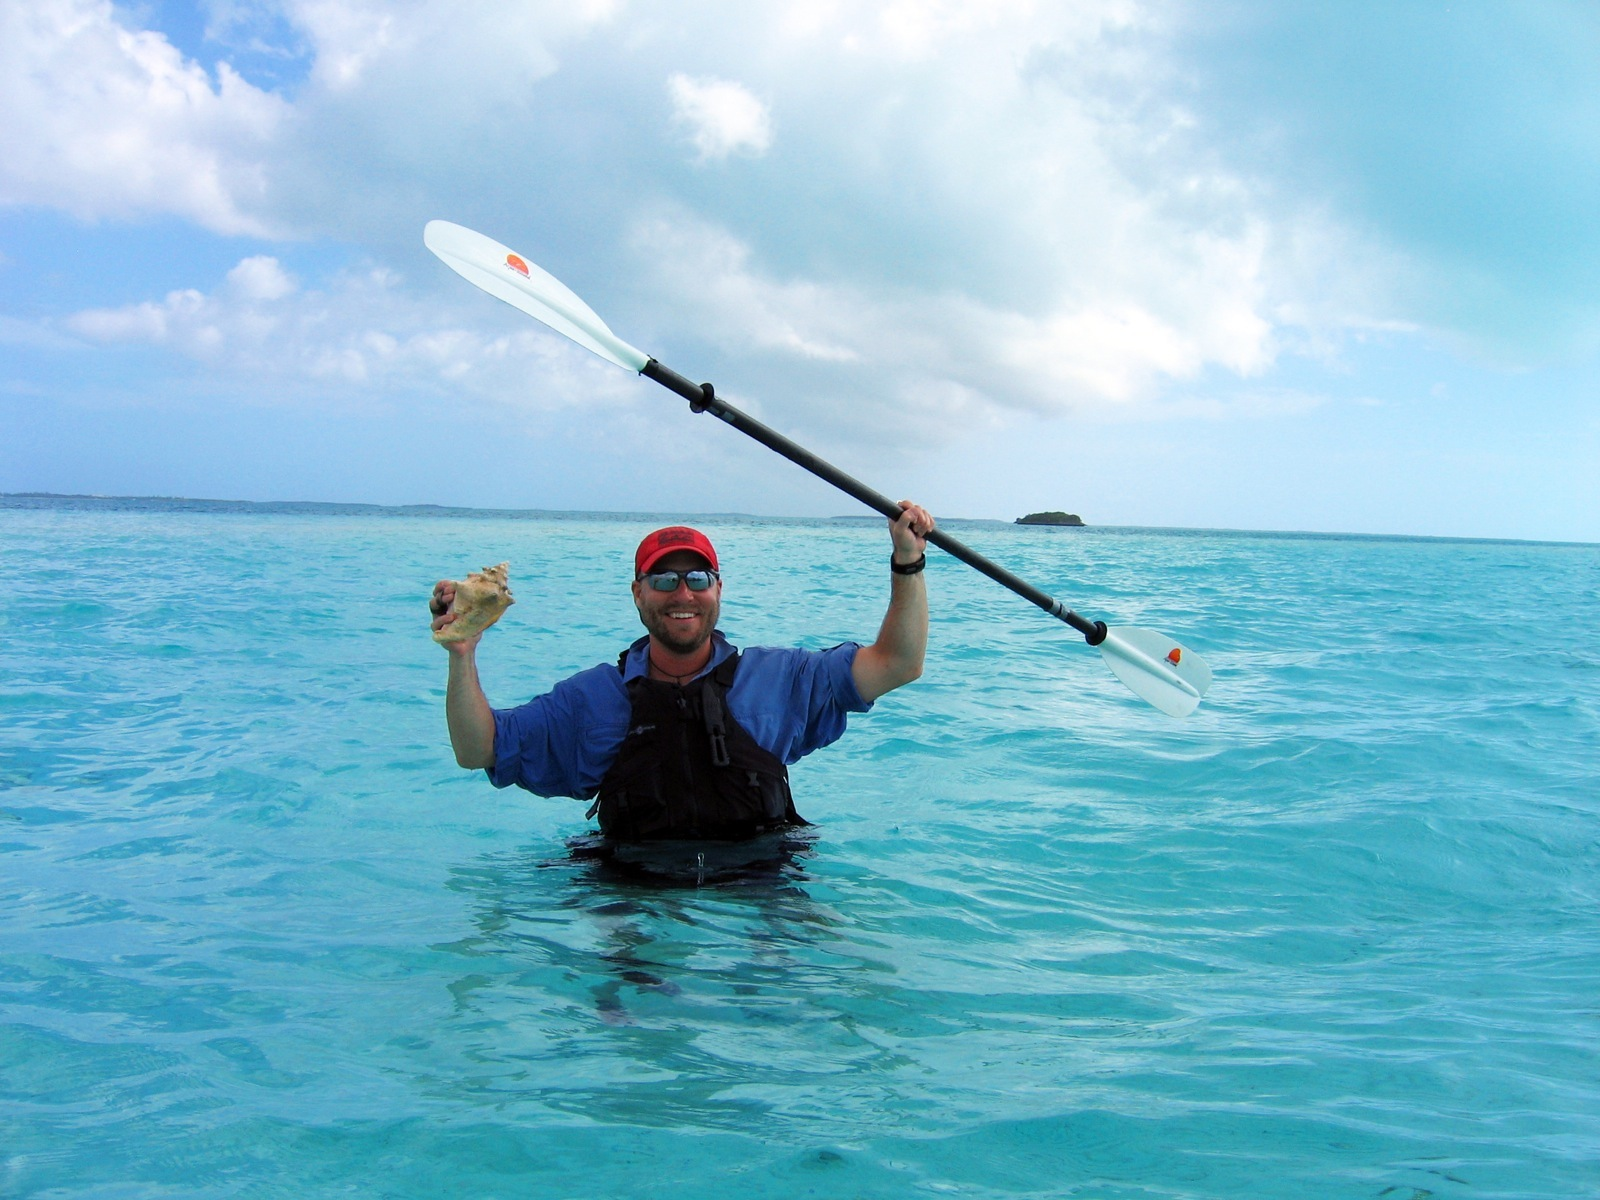 Dave excitedly holds up his kayak paddle and a conch shell as he stands waist deep in the blue waters of the Caribbean.